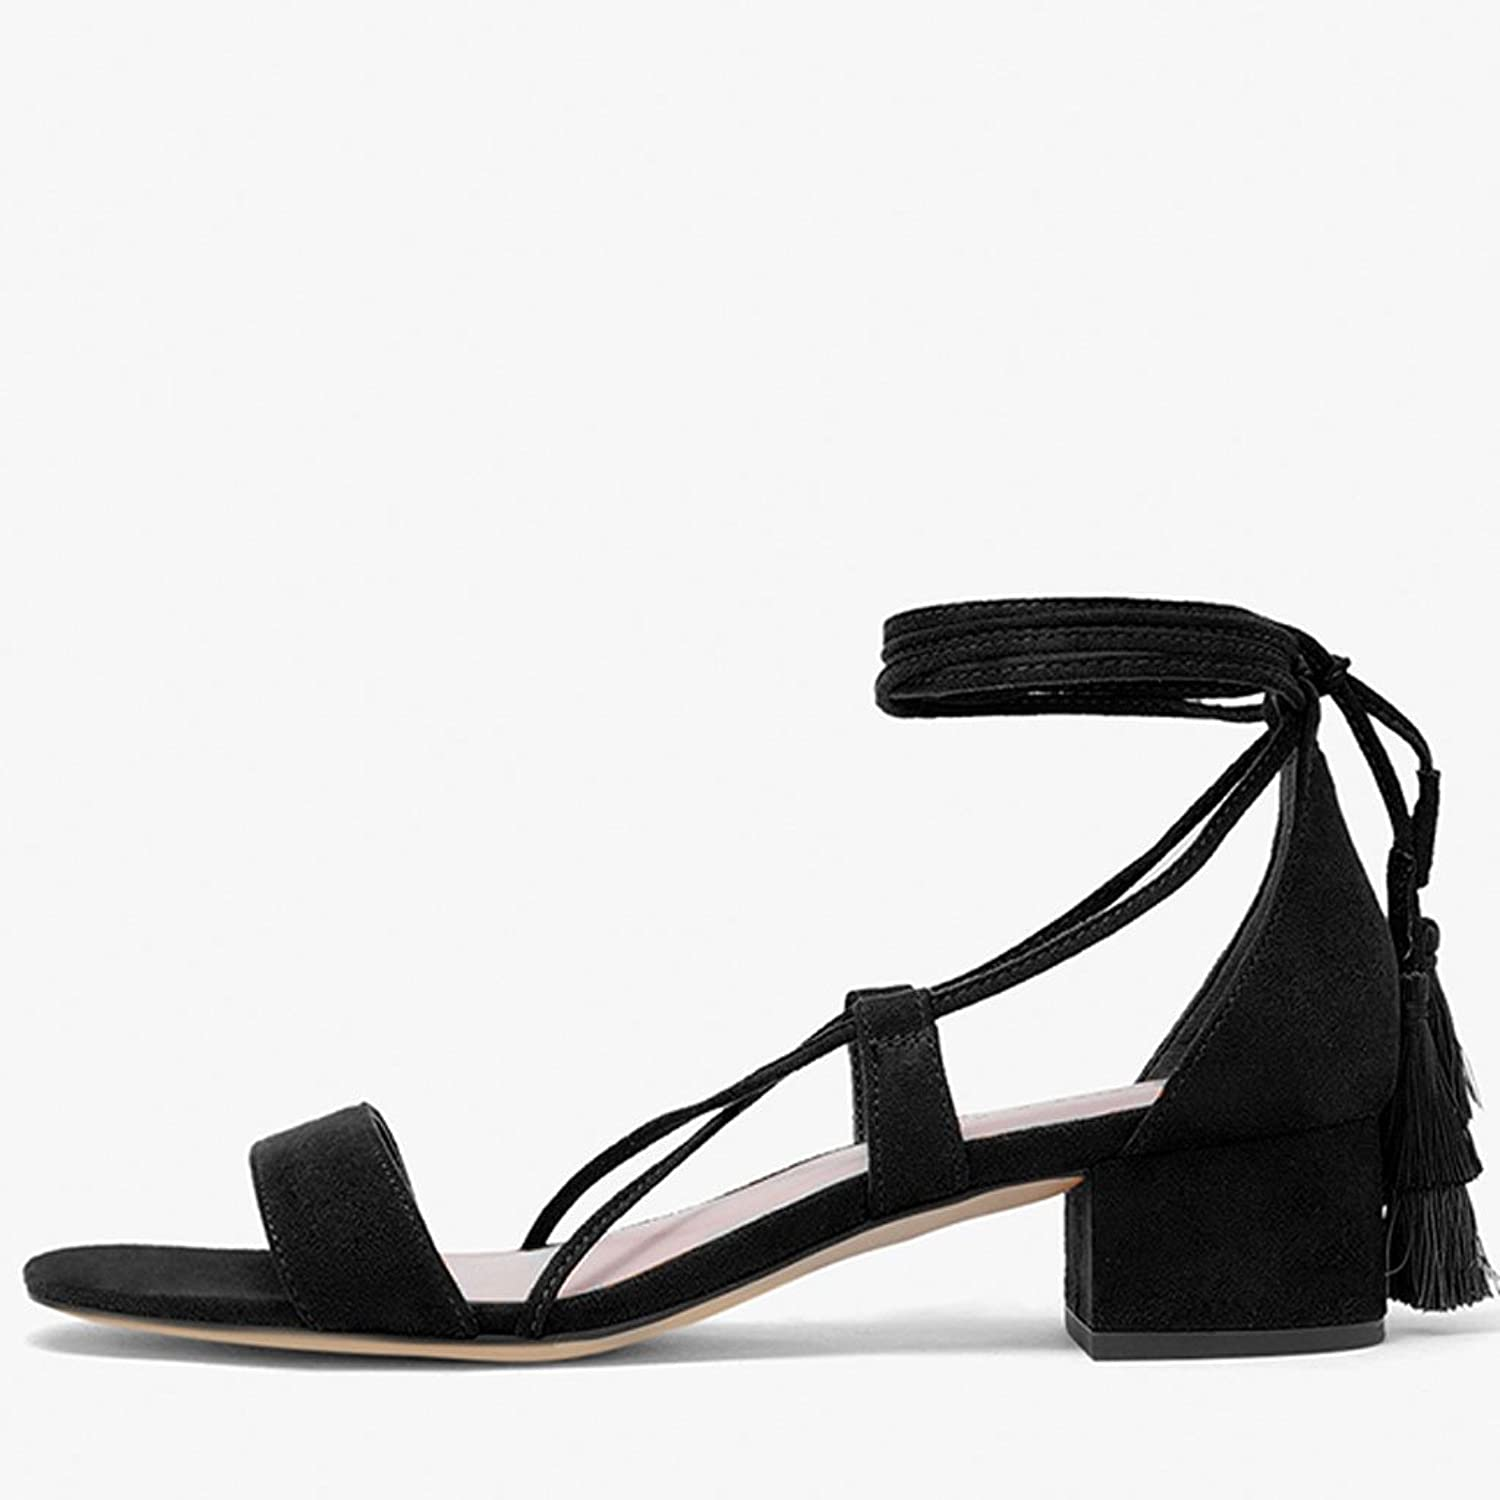 LIUXUEPING Sweet Line Tie Fringe with Thick Heel Sandals Tied with Fringe Trim Cross Lace shoes. (color   Black, Size   35)